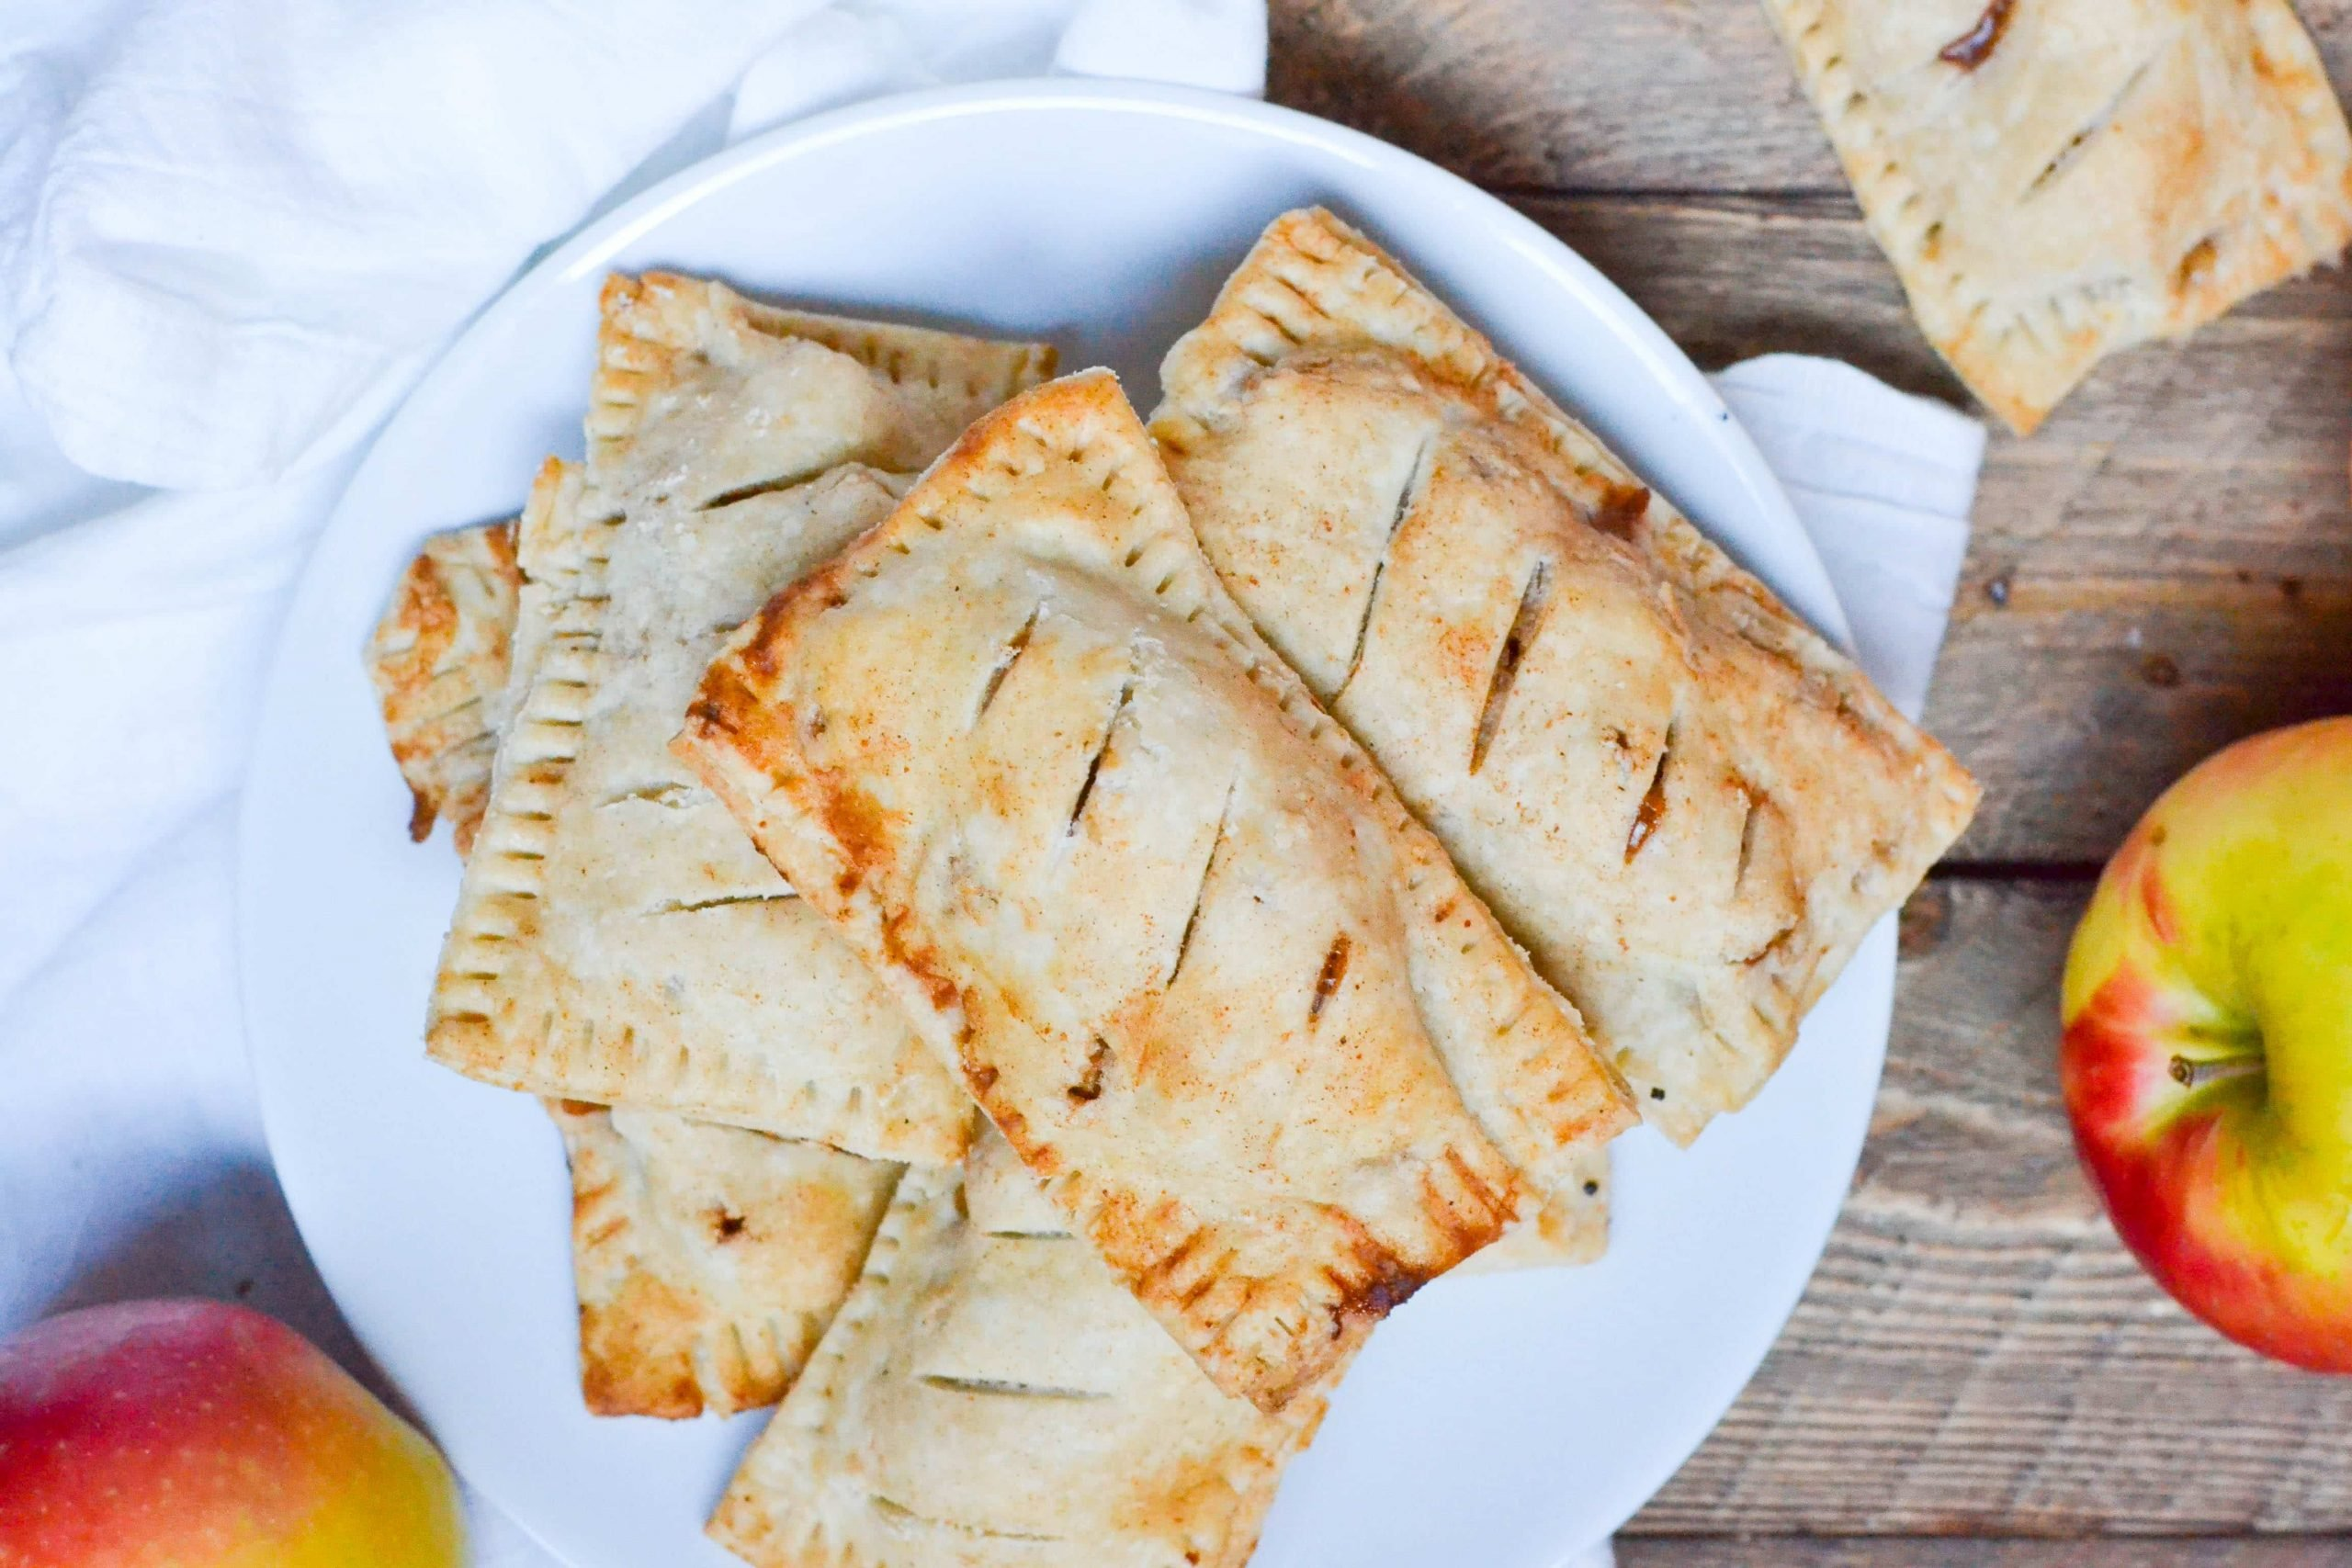 Gluten-Free Vegan Apple Hand Pies (GF, DF, V) - A Dash of Megnut